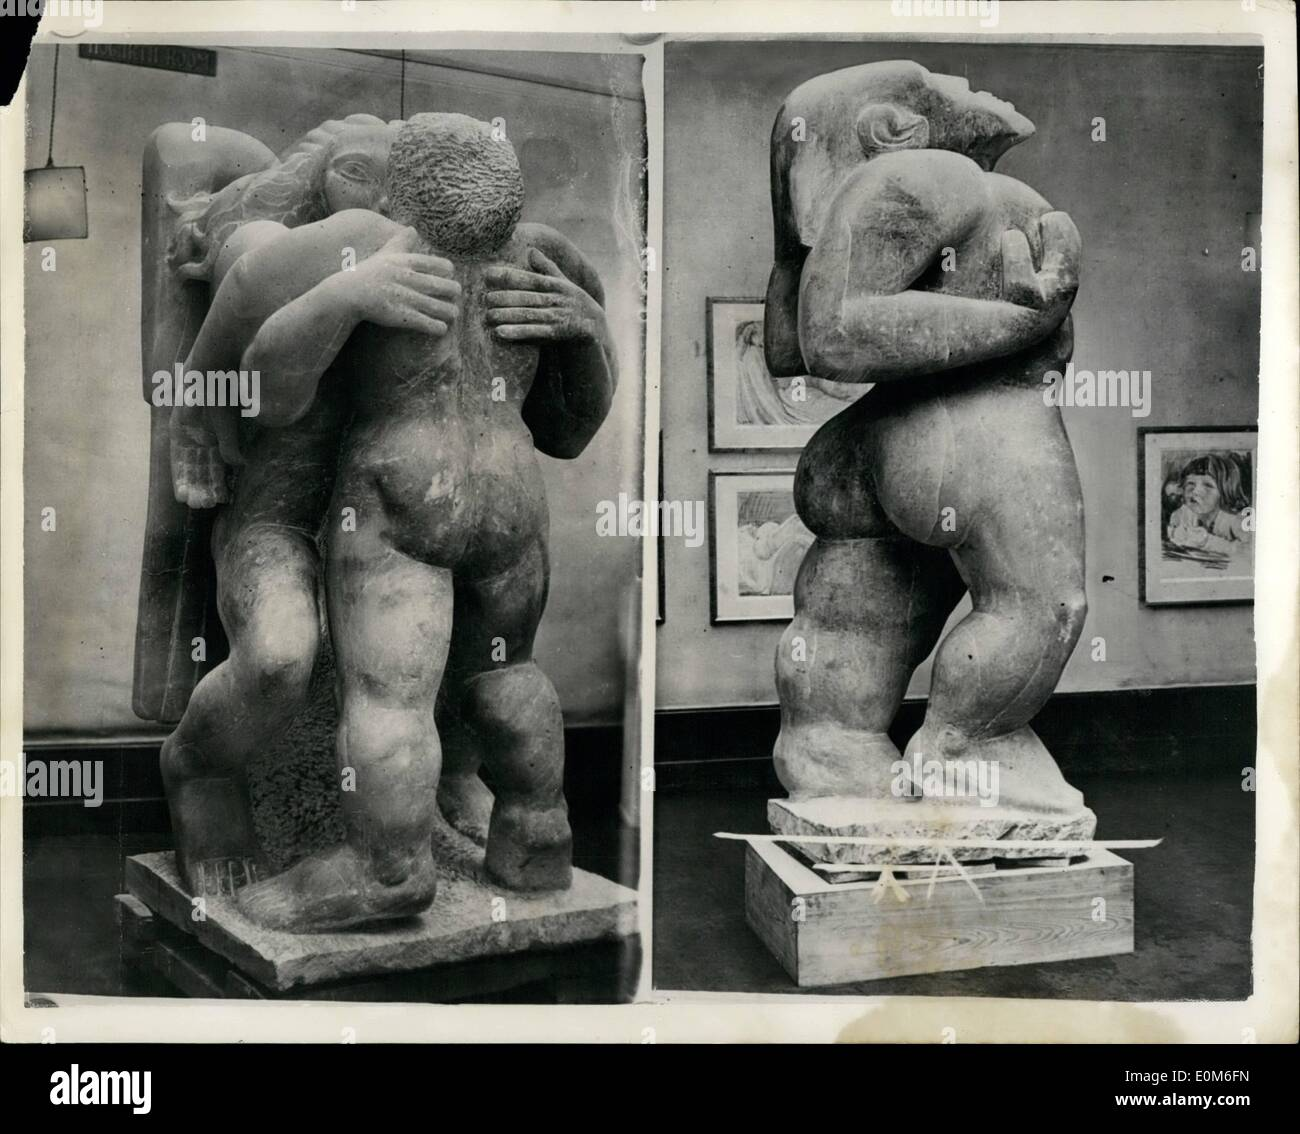 Sep. 09, 1953 - Ice cream man offers Epsteins for sale.: Jacob Epstein, the famous sculpto, said last night: ''Is am disgusted with the commercialisation of my art''. He had just been told that his three-ton alabaster statue of Adam and two more of his masterpiece were advertised for sale. Adam, the 7ft. symbolic interpretation of Man, which infuriated some people and enraptured others, then drew in the thousands as a sideshow, is in store. With him are Jacob and the Angel, and the advertisement - Stock Image